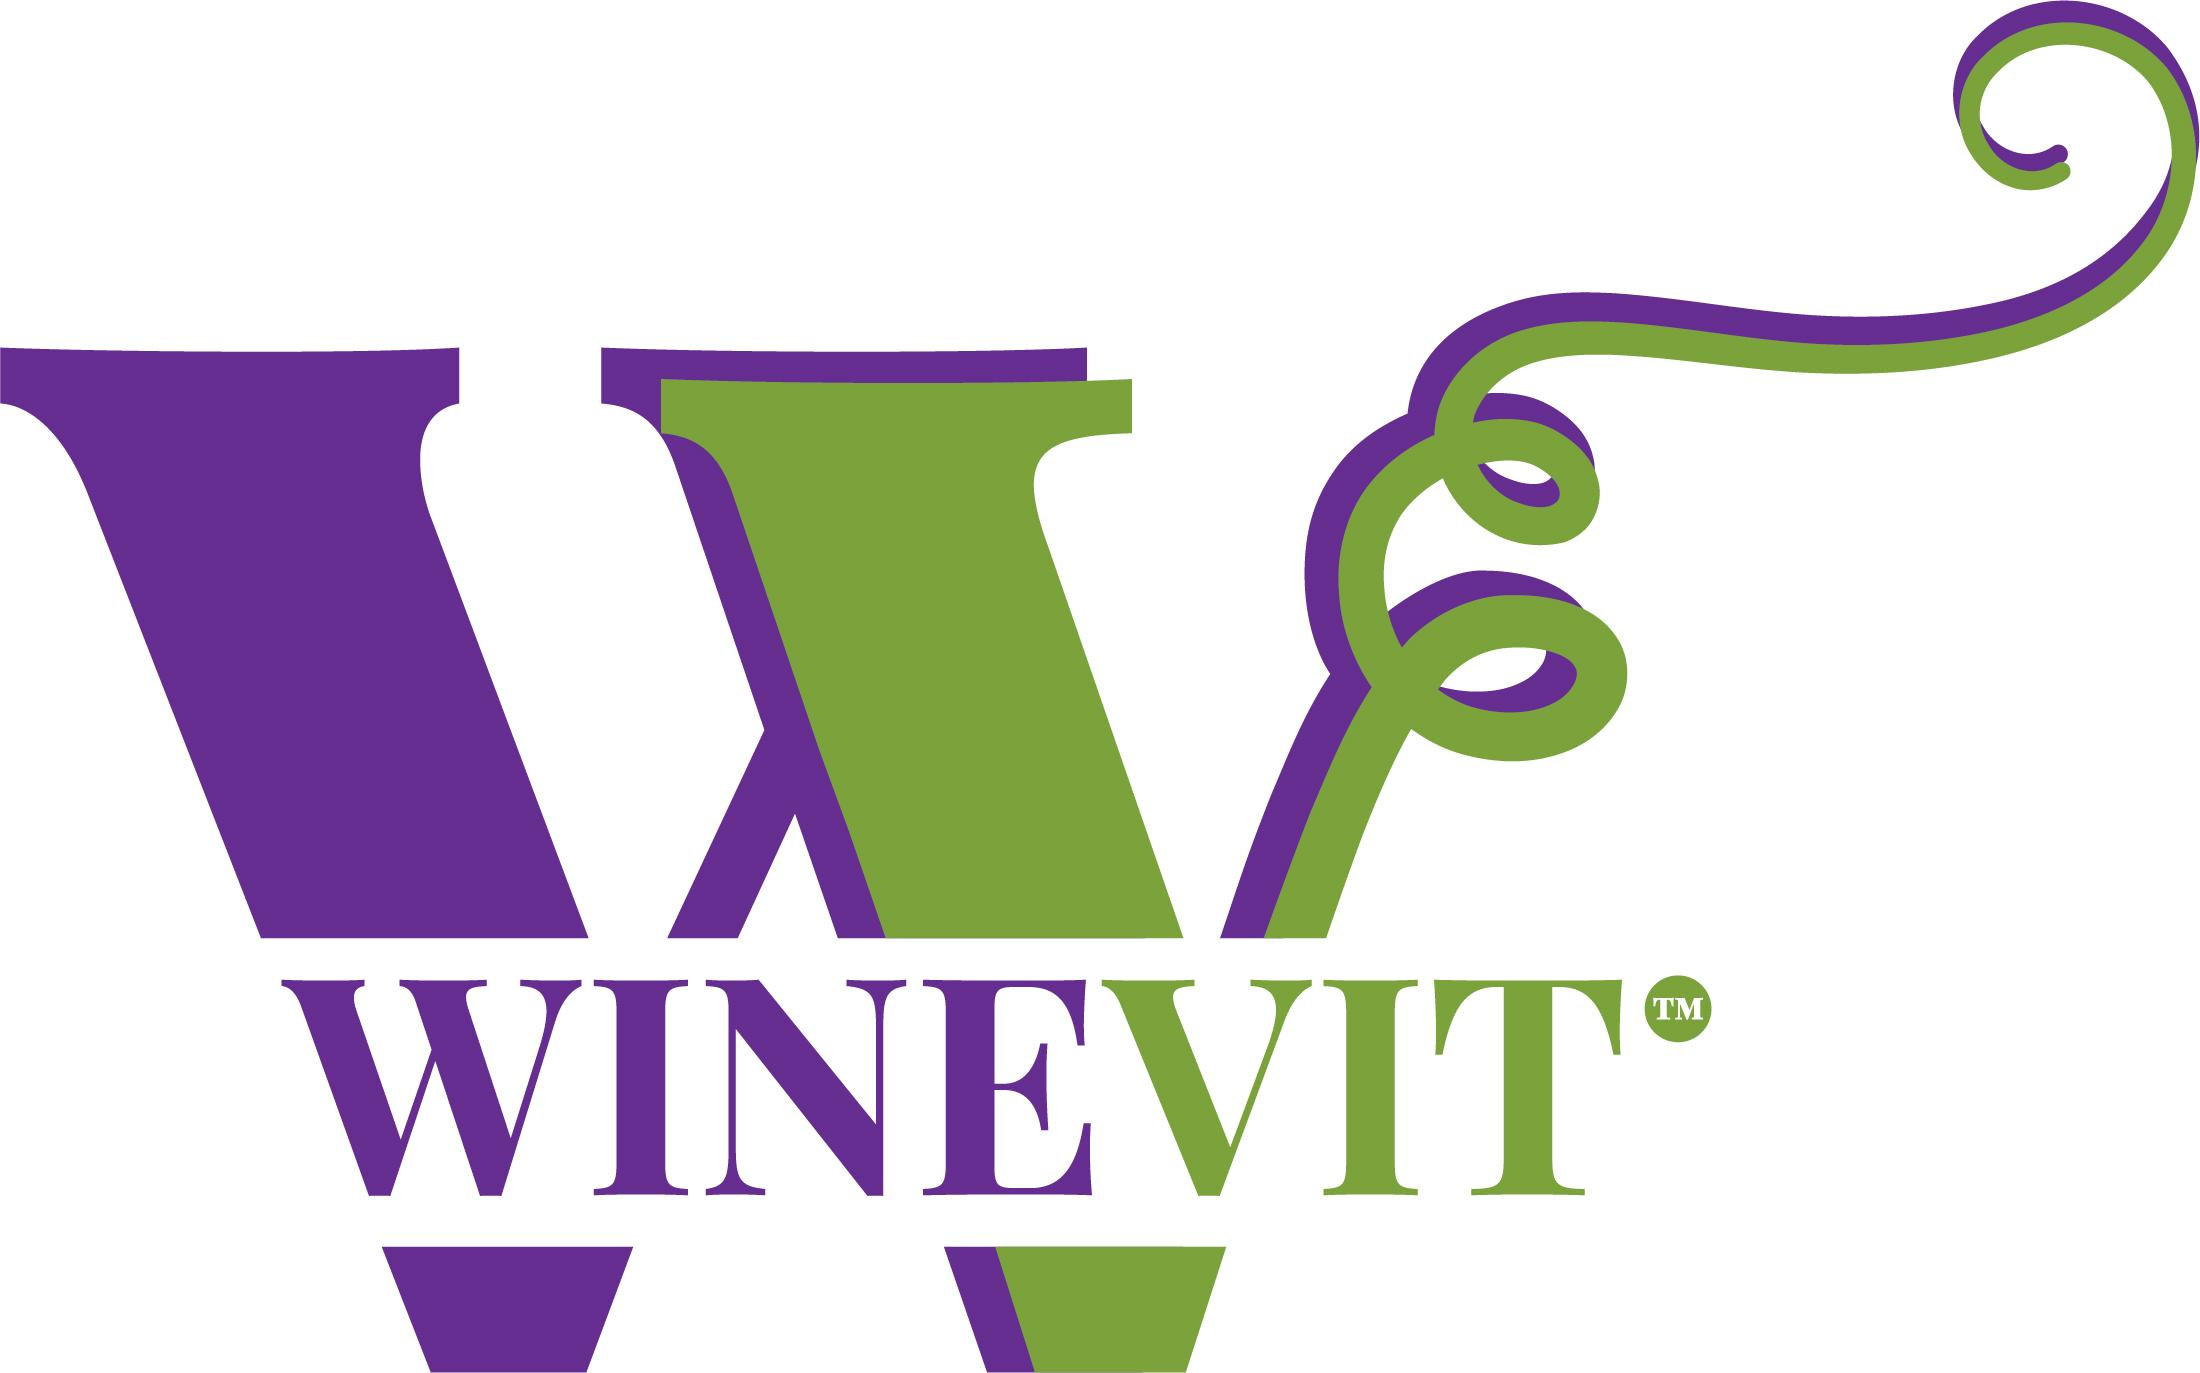 WineVit Logo Color - Washington Winegrowers Association presents WineVit